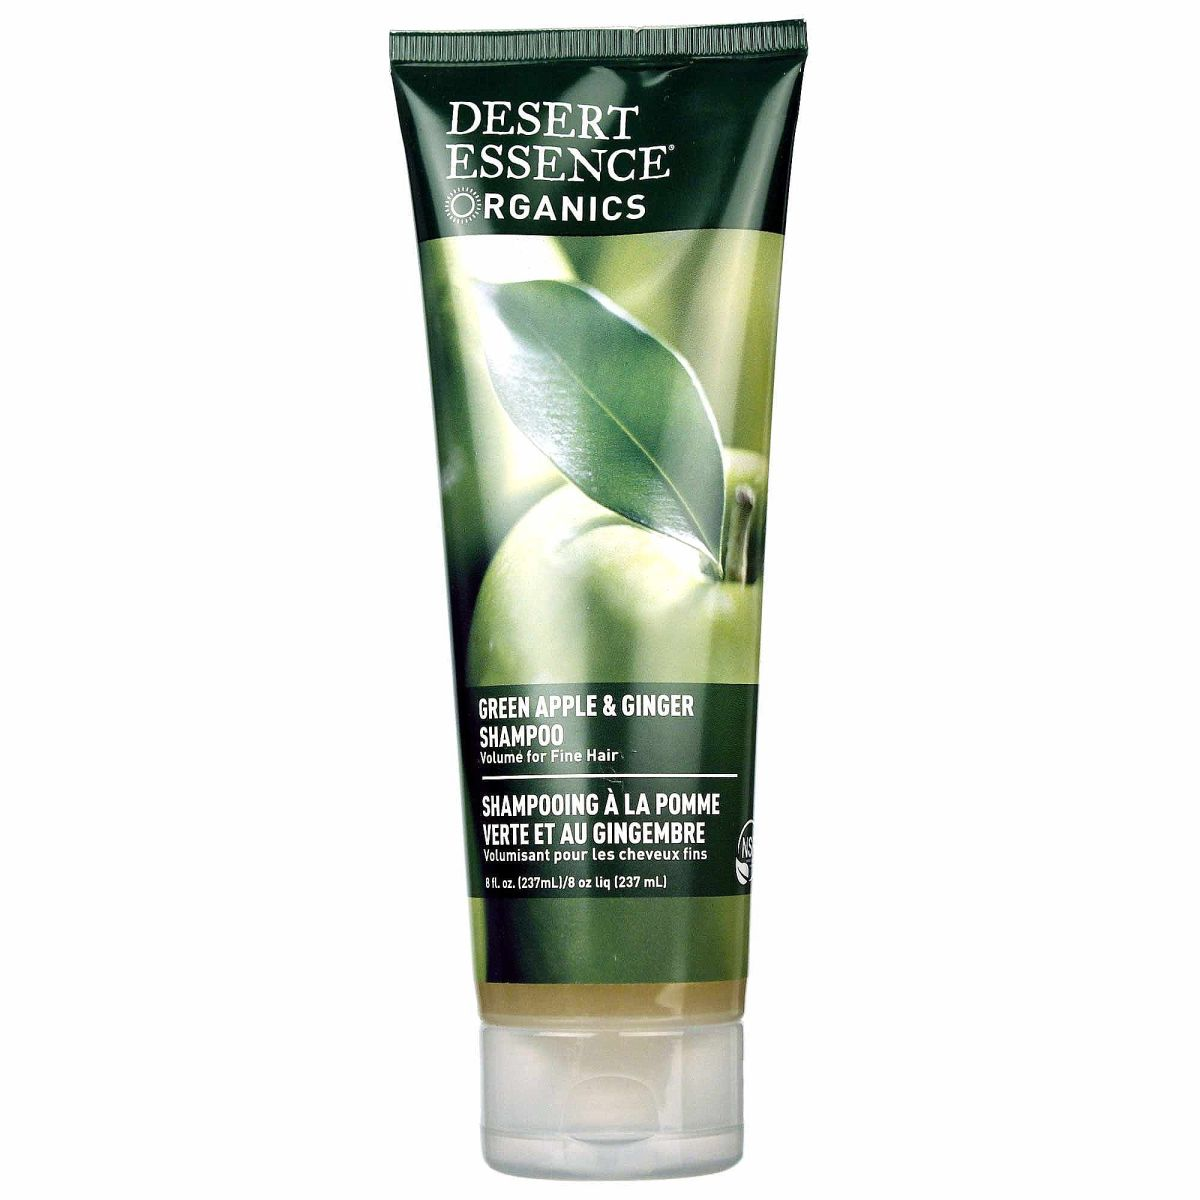 Desert Essence Organics Thickening Shampoo Green Apple and Ginger